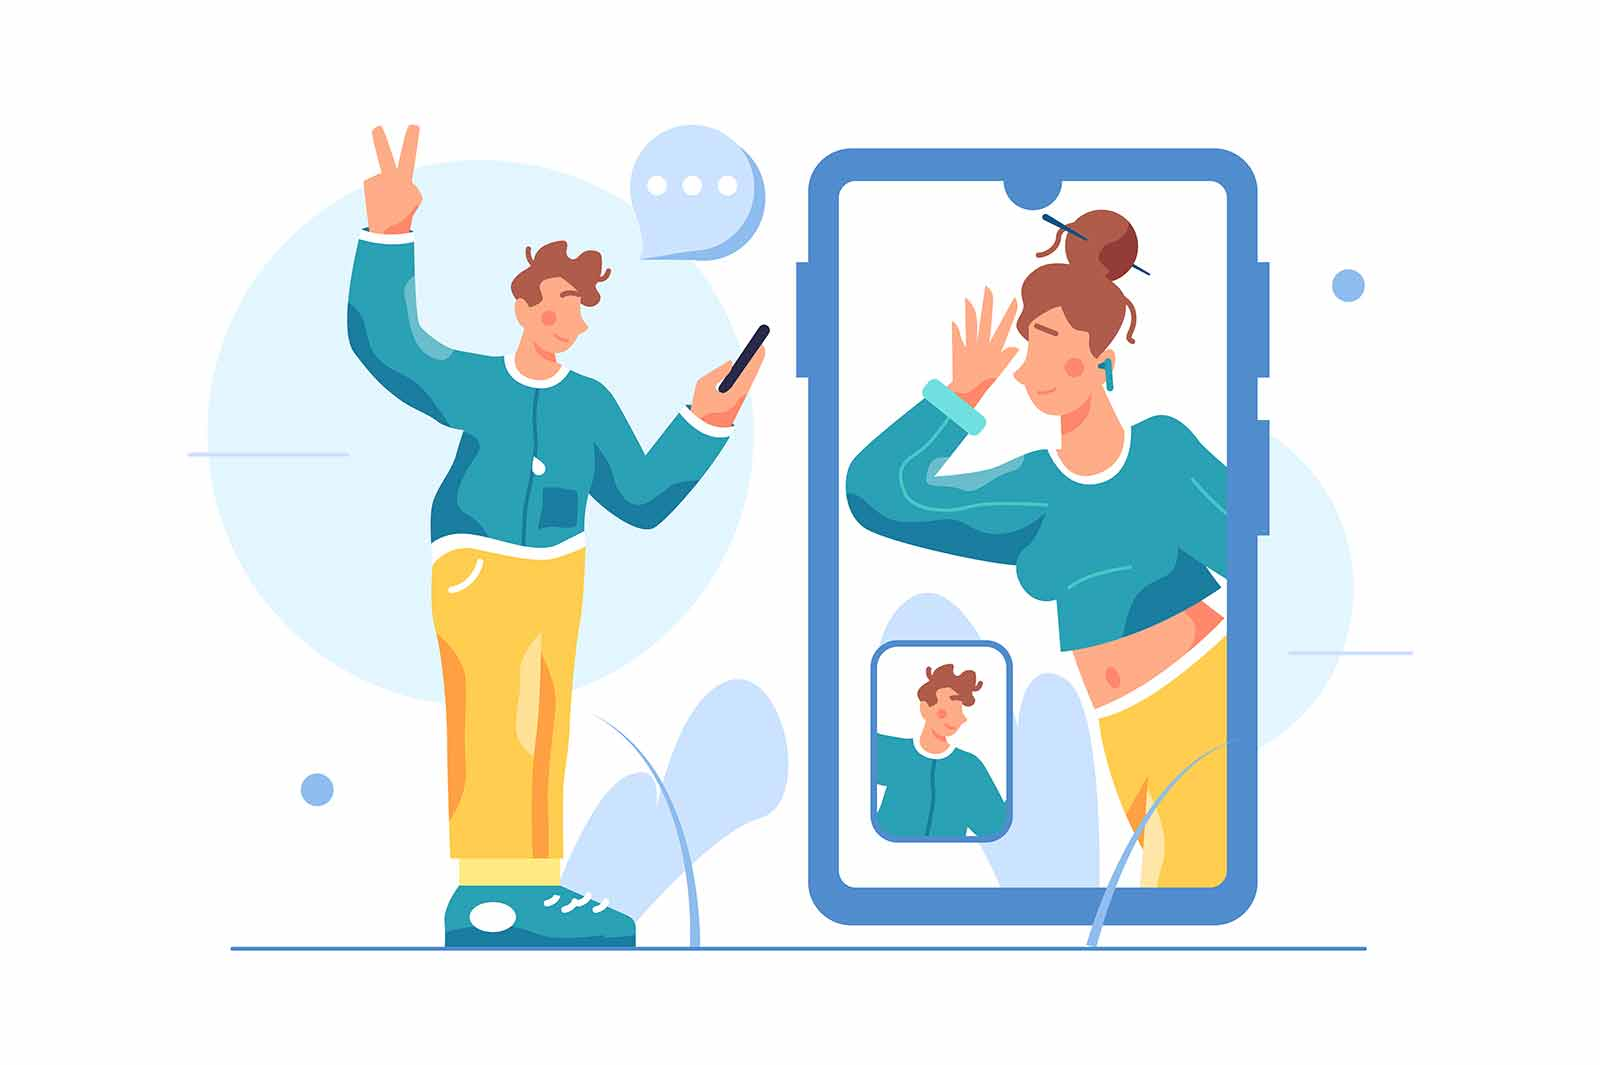 Man talking on video communication with a woman through a big mobile phone, man holding a phone in his hand, isolated on white background, flat vector illustration